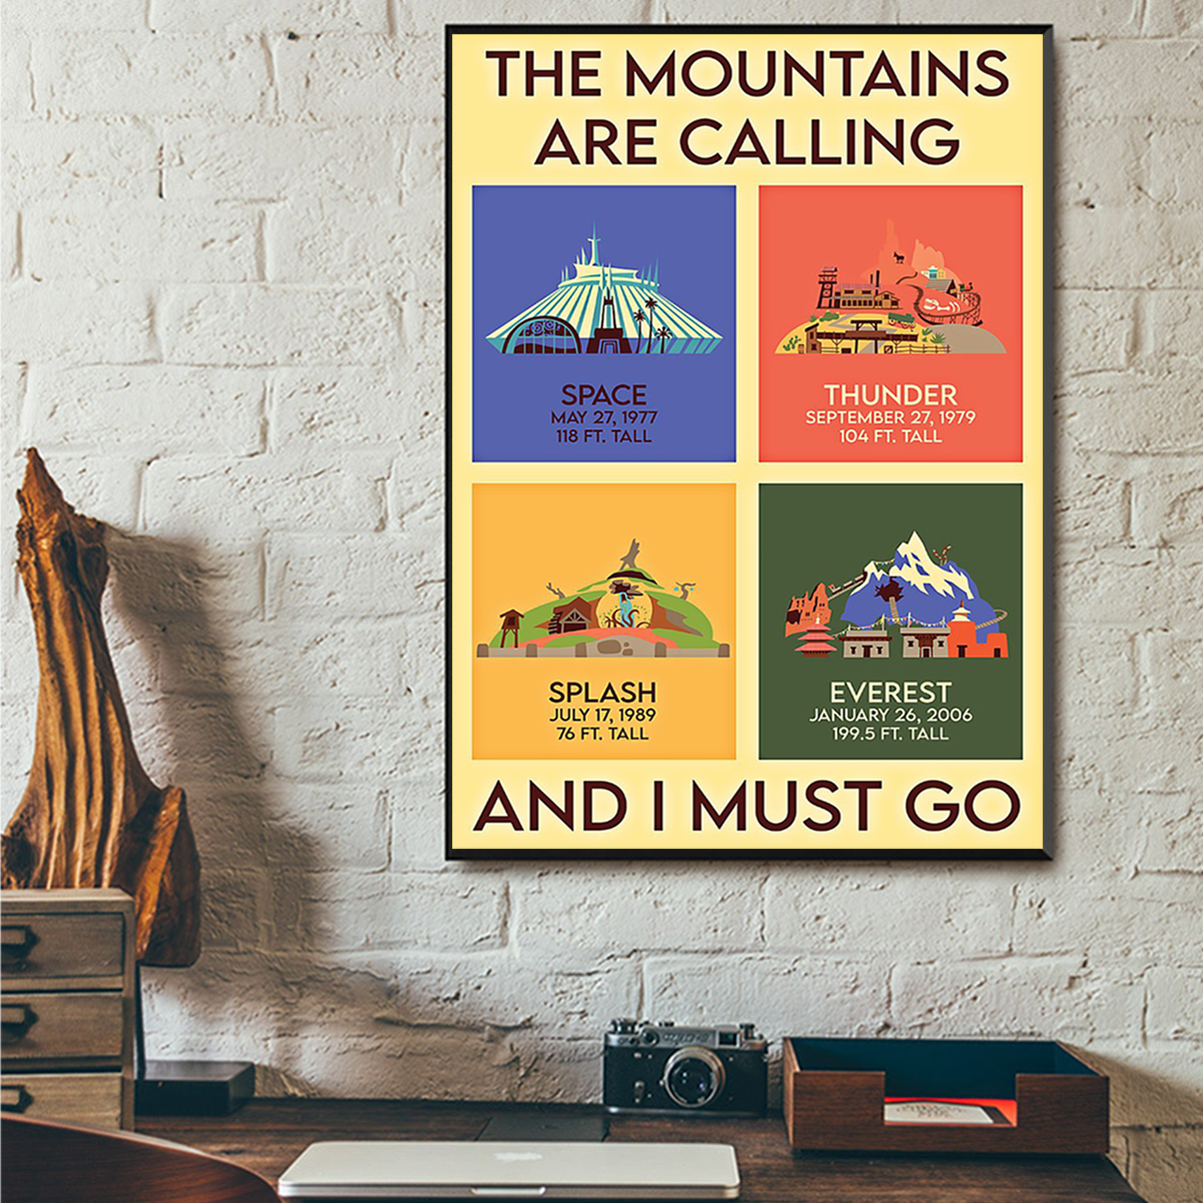 The mountains are calling and I must go poster A1